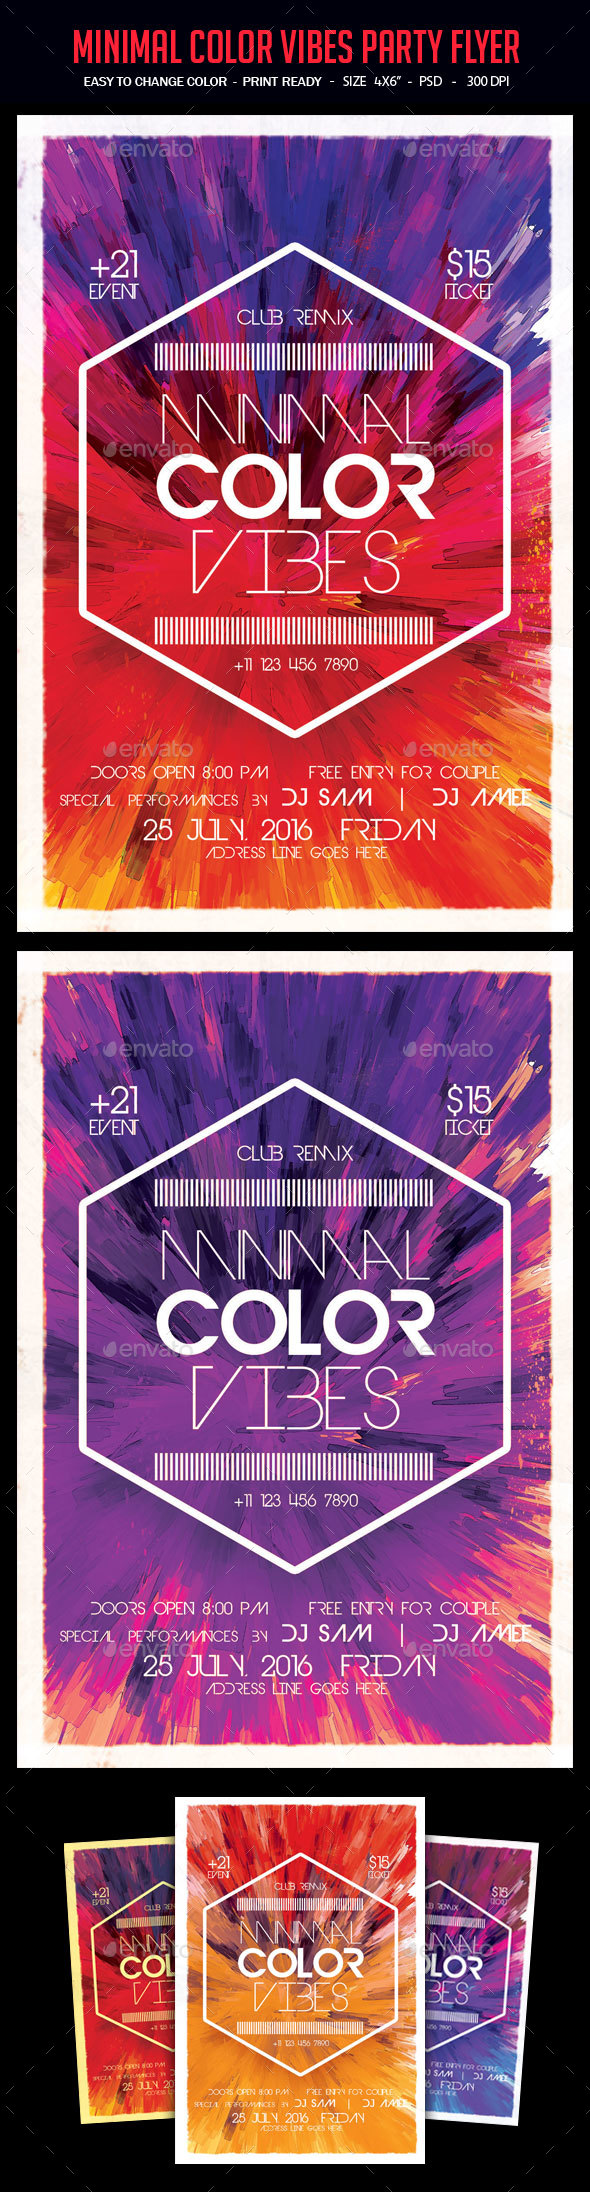 Minimal Color Vibes Party Flyer - Clubs & Parties Events